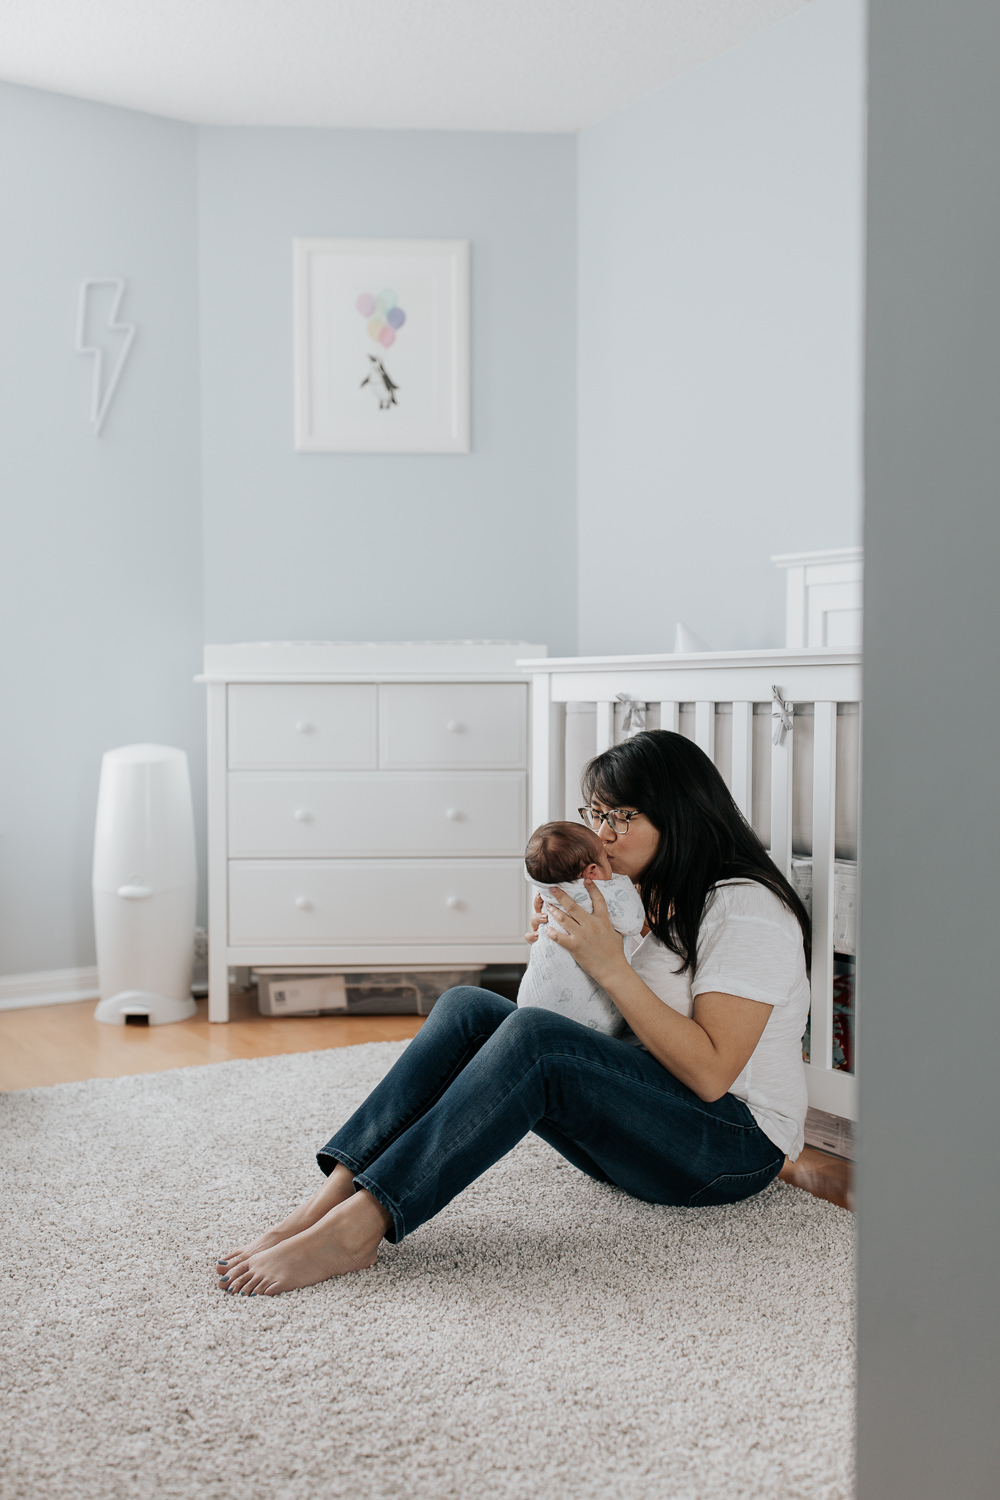 new mother with long dark hair wearing glasses sitting in front of nursery crib holding 2 week old baby boy in her arms, kissing son on forehead - York Region Lifestyle Photography